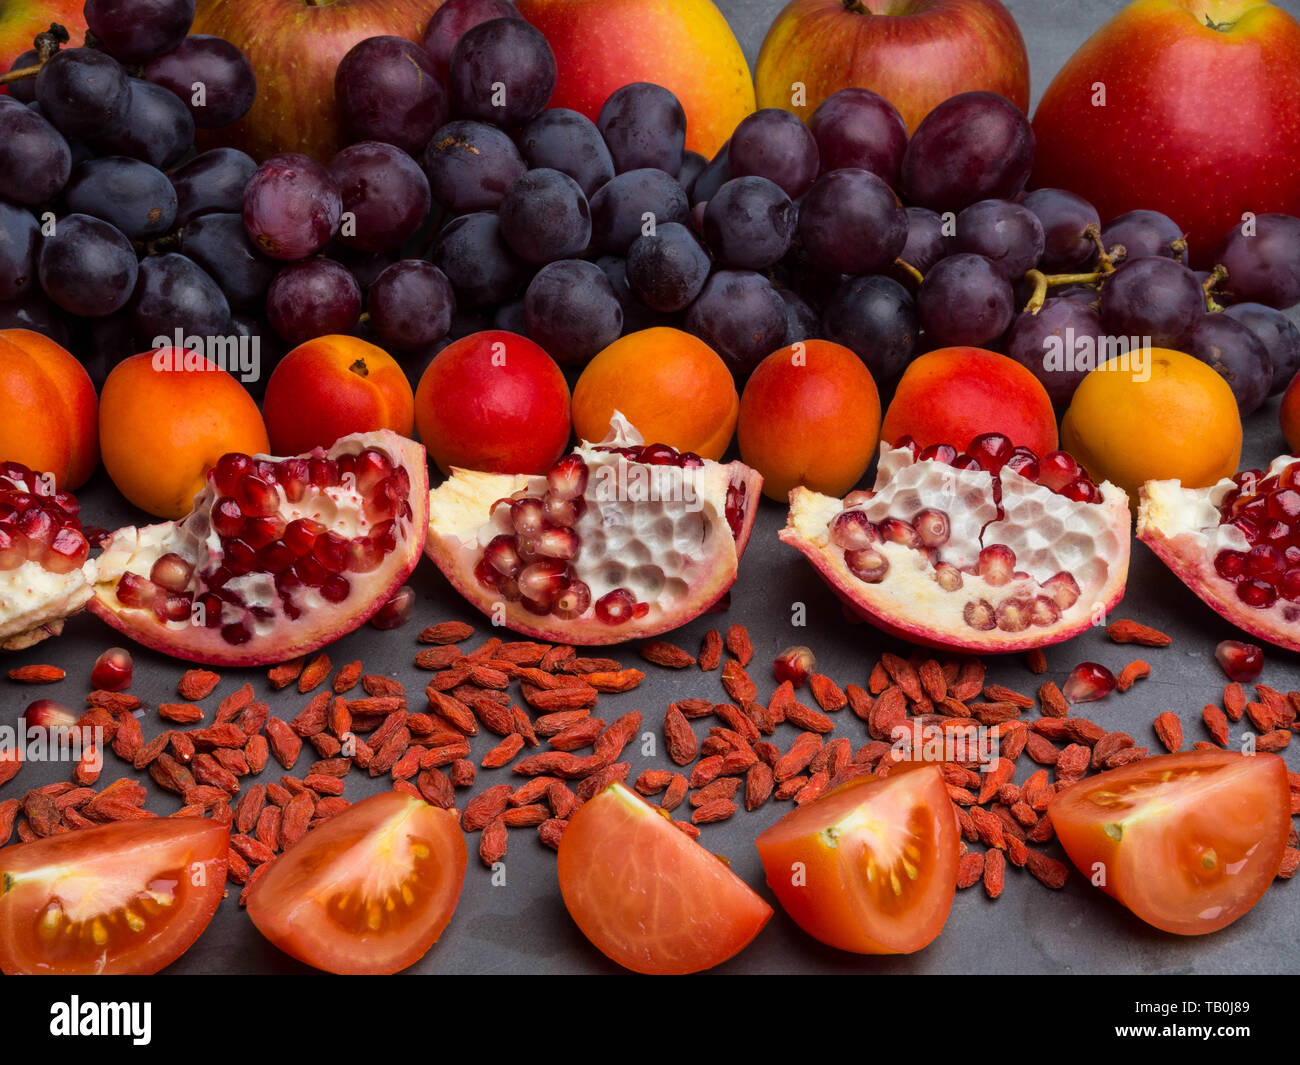 Red Fruits And Berrys Rich Vitamin Resveratrol Antioxidants Food Apples Grape Apricots Pomegranate Goji Tomatoes Stock Photo Alamy